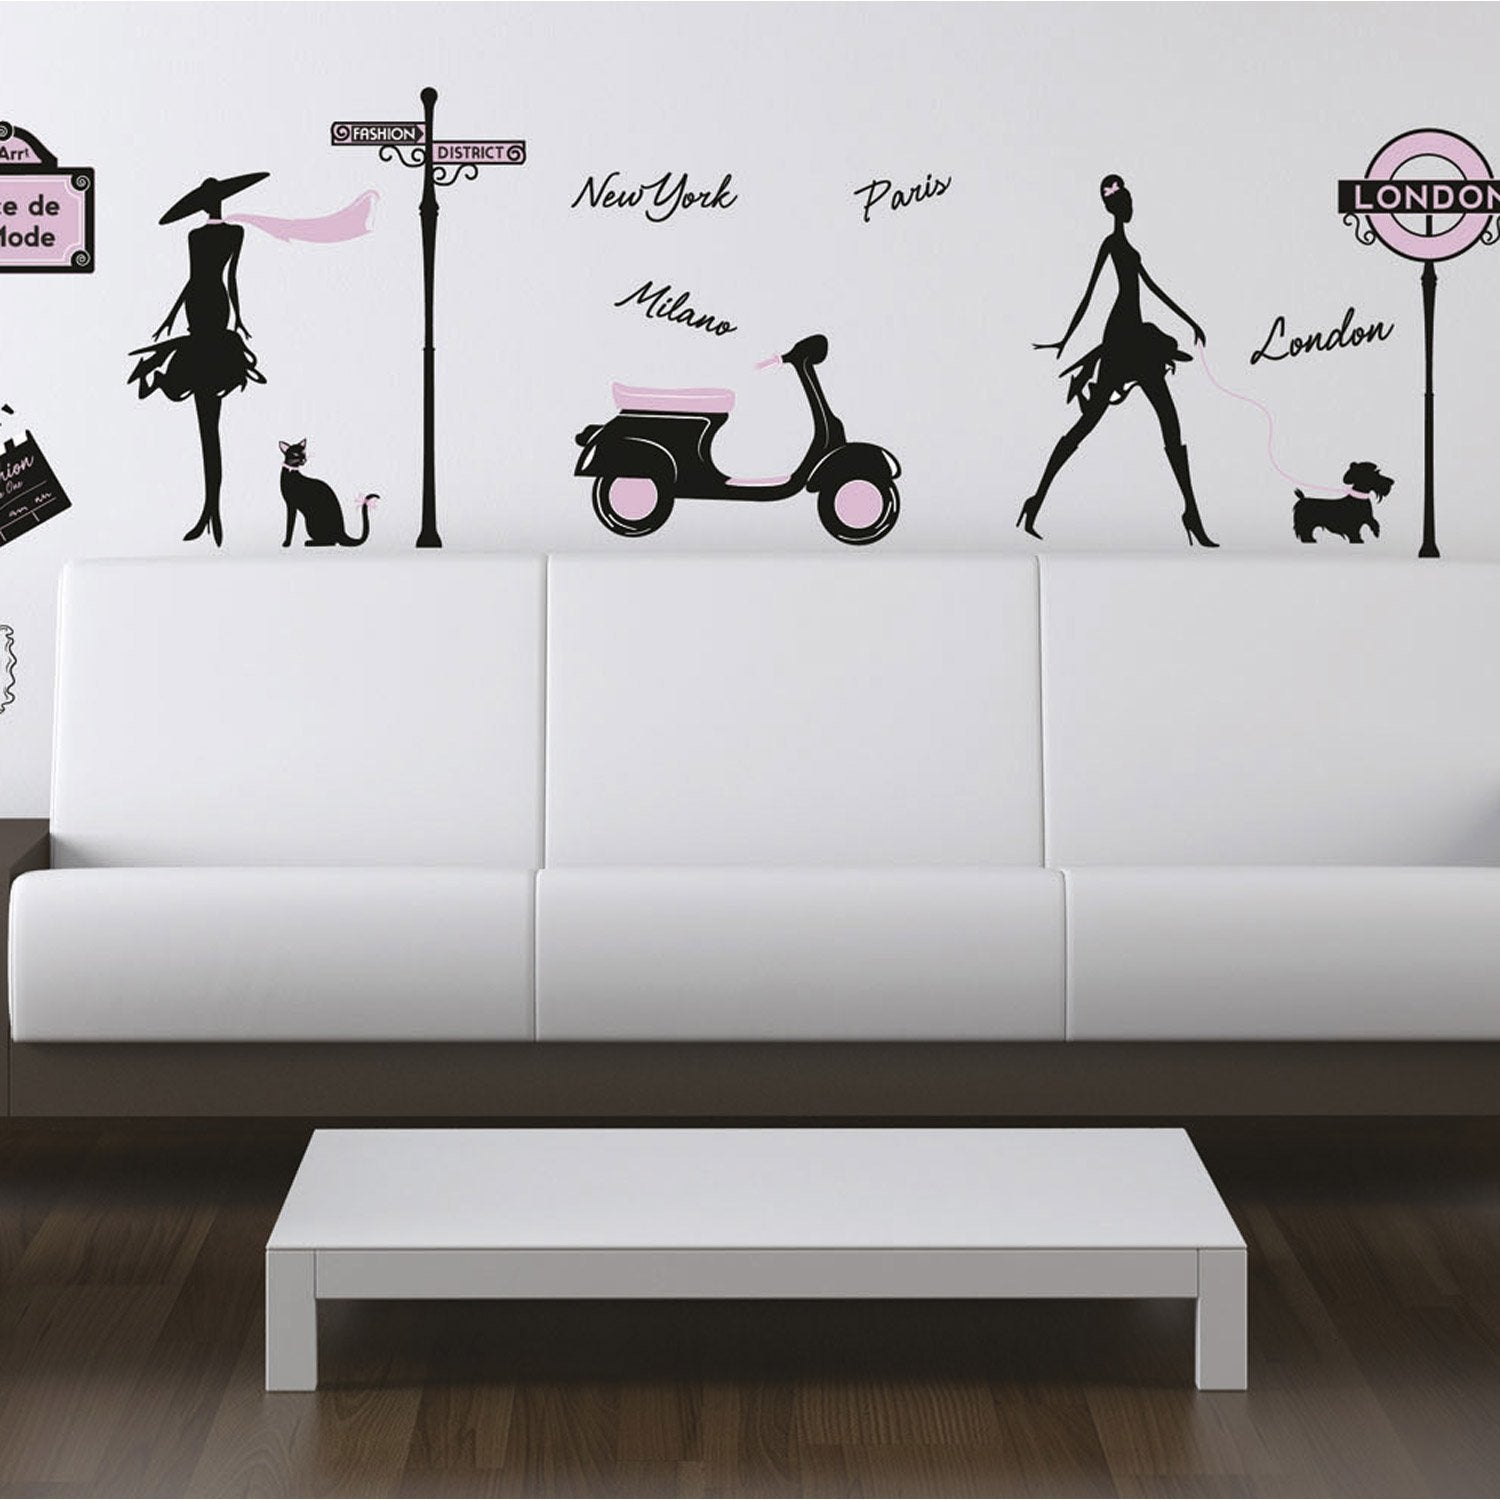 Sticker world fashion 50 cm x 70 cm leroy merlin for Leroy merlin stickers